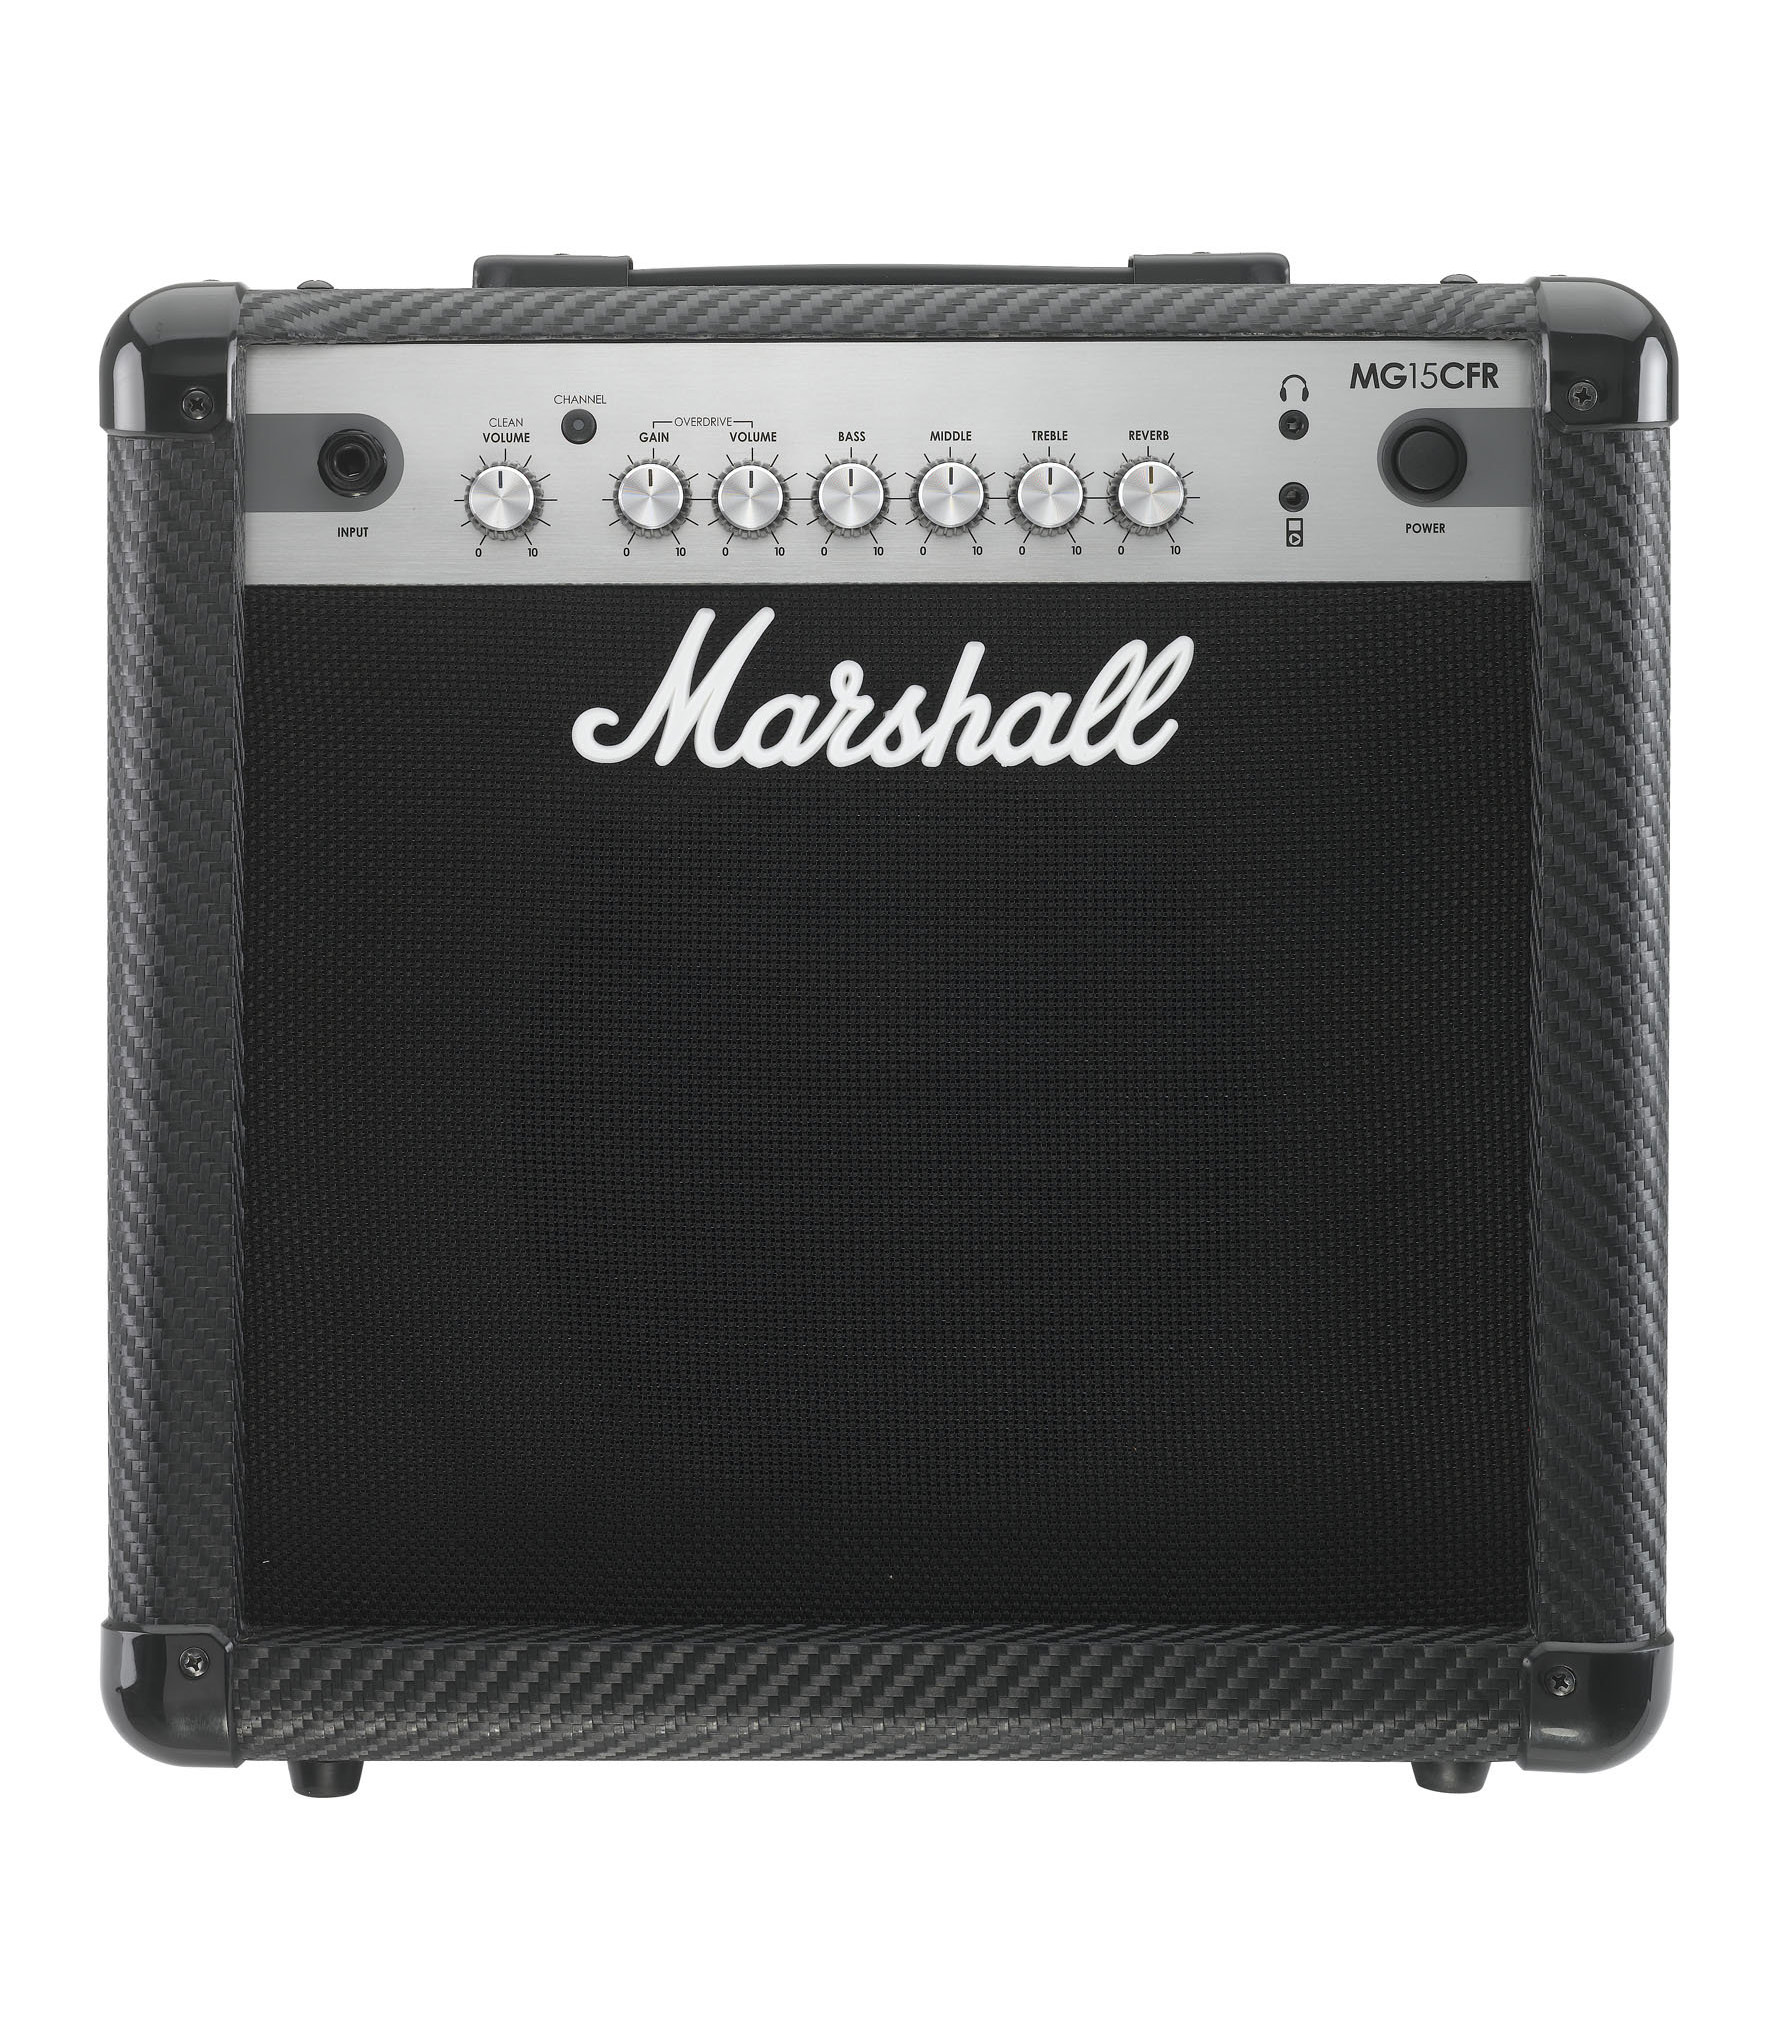 buy marshall mg15cfr solid state guitar amp 2 channe